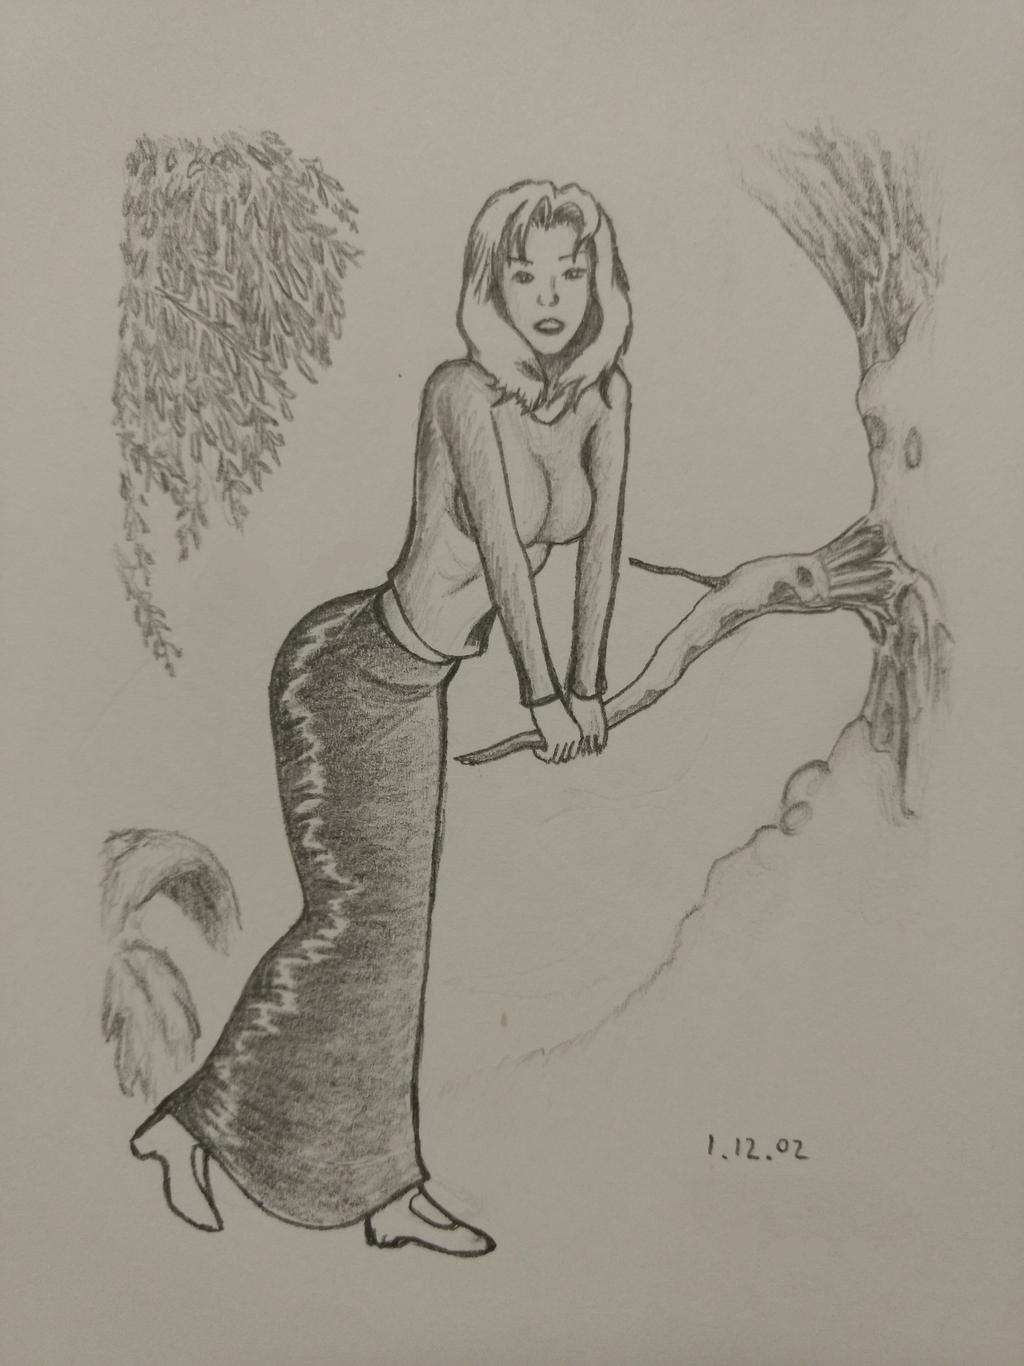 A girl in a forest